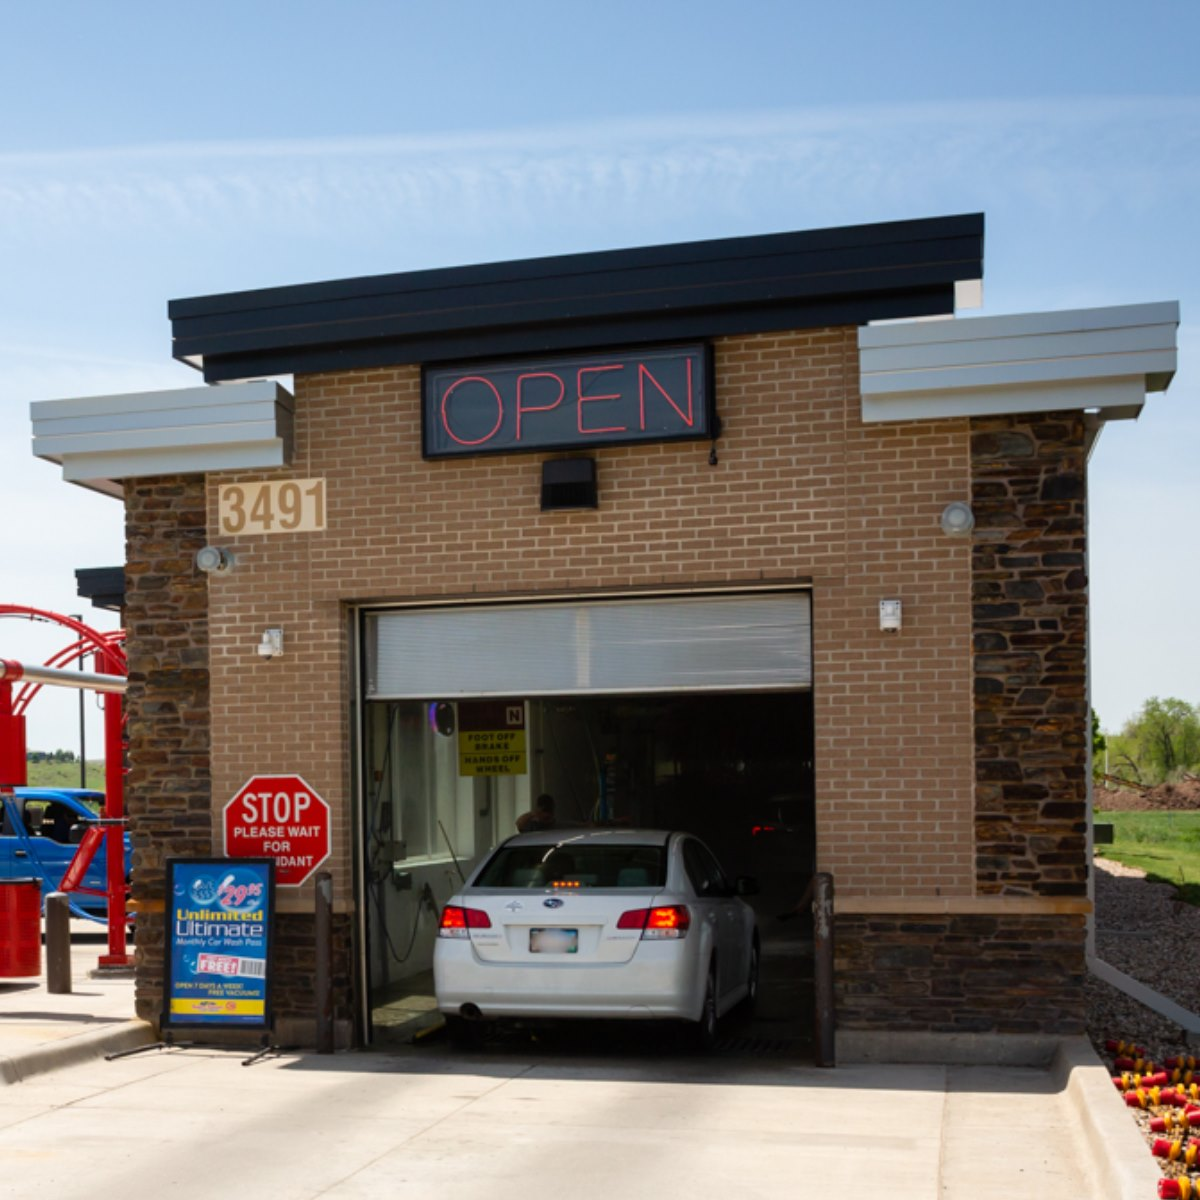 Start Your Year Off Right With a Monthly Car Wash Pass To Any Common Cents Super Tunnel Car Wash Location! A $32.95 Value For Only $9.97!